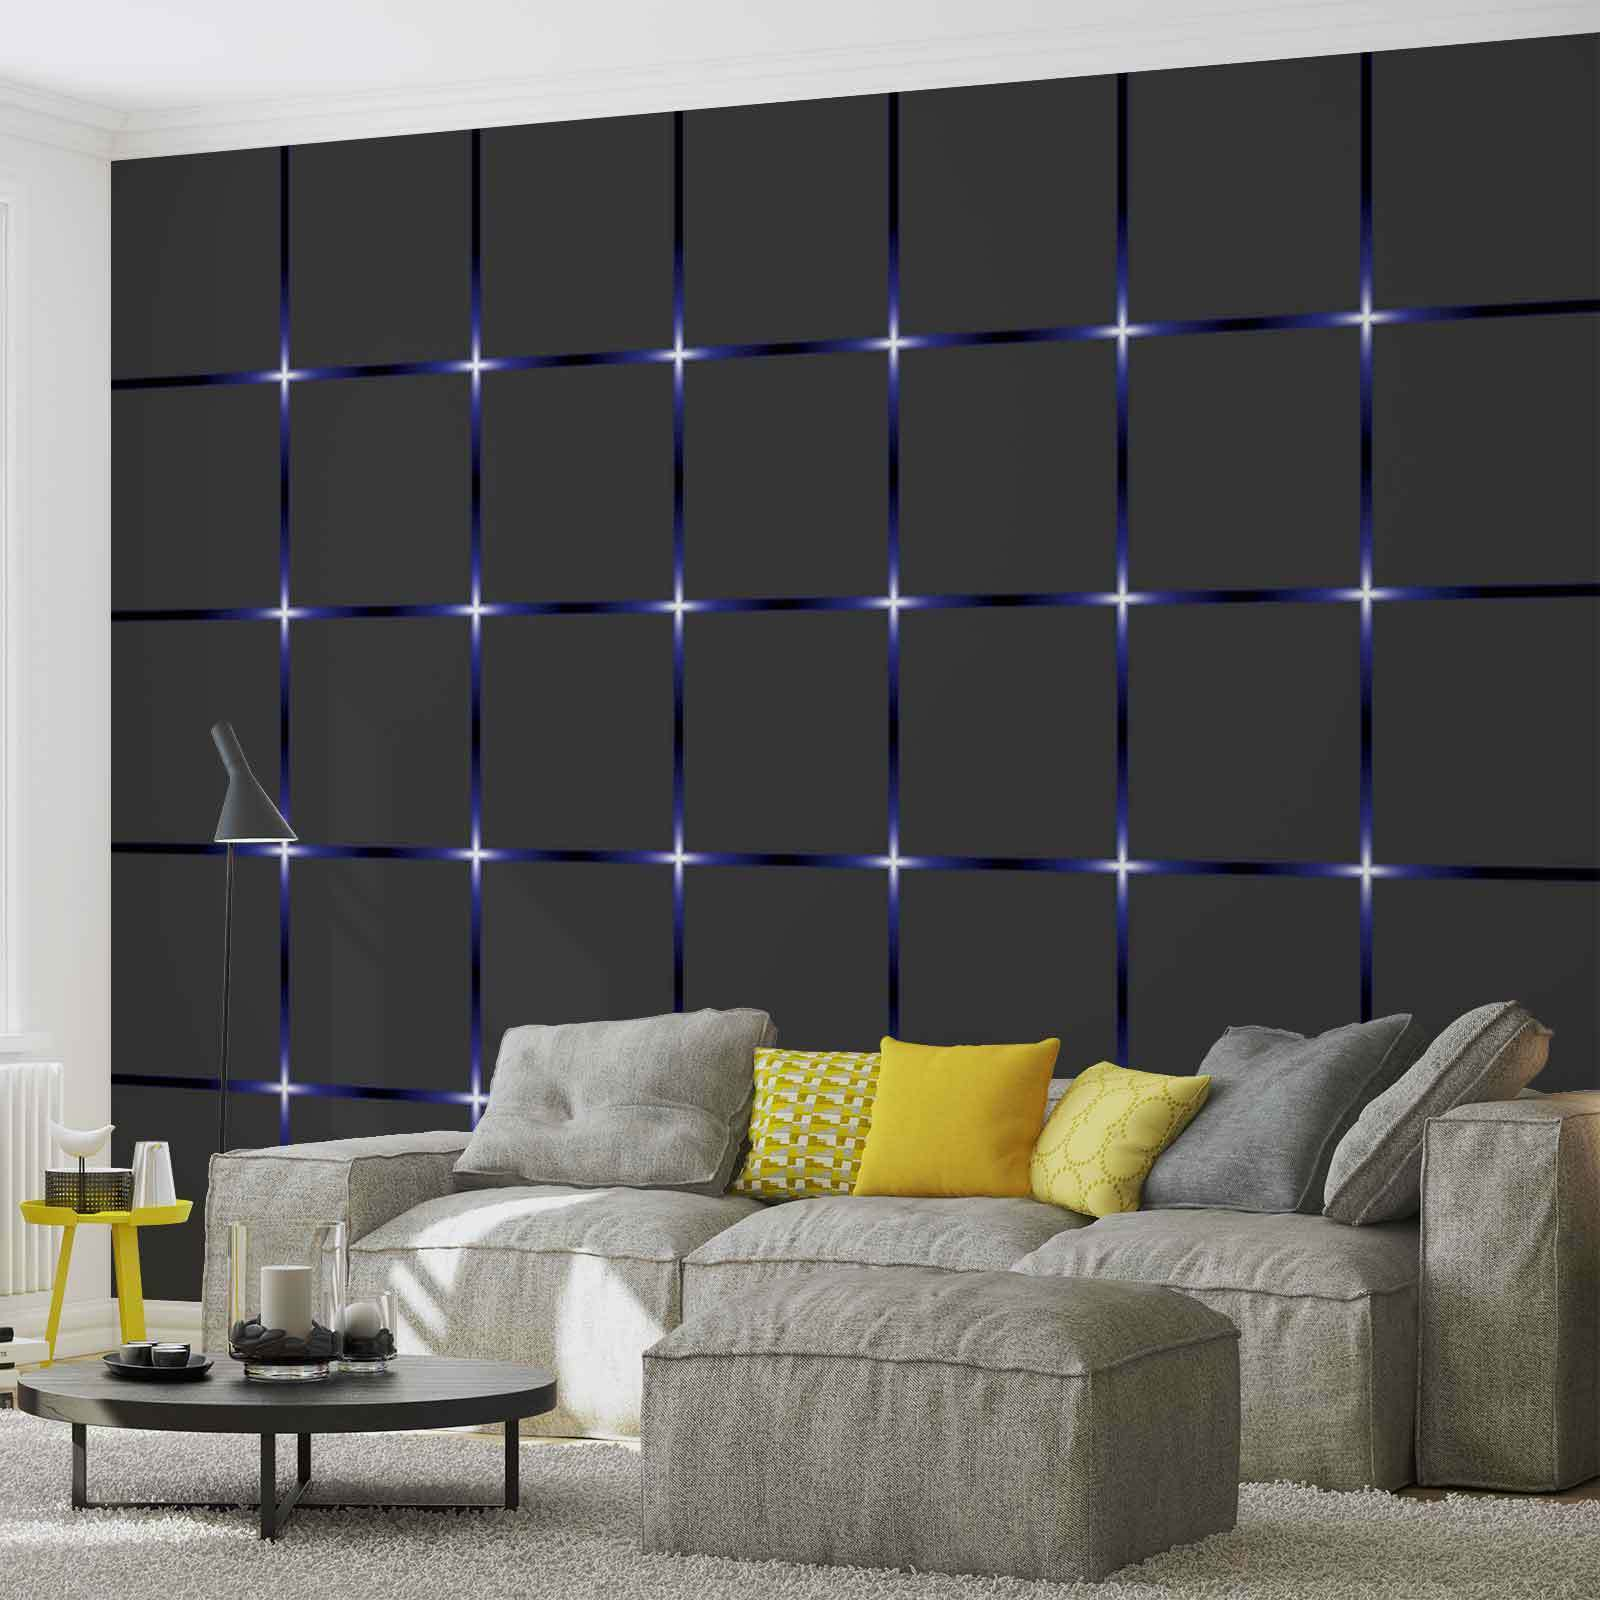 wall mural square black blue xxl photo wallpaper 2155dc On black wall mural